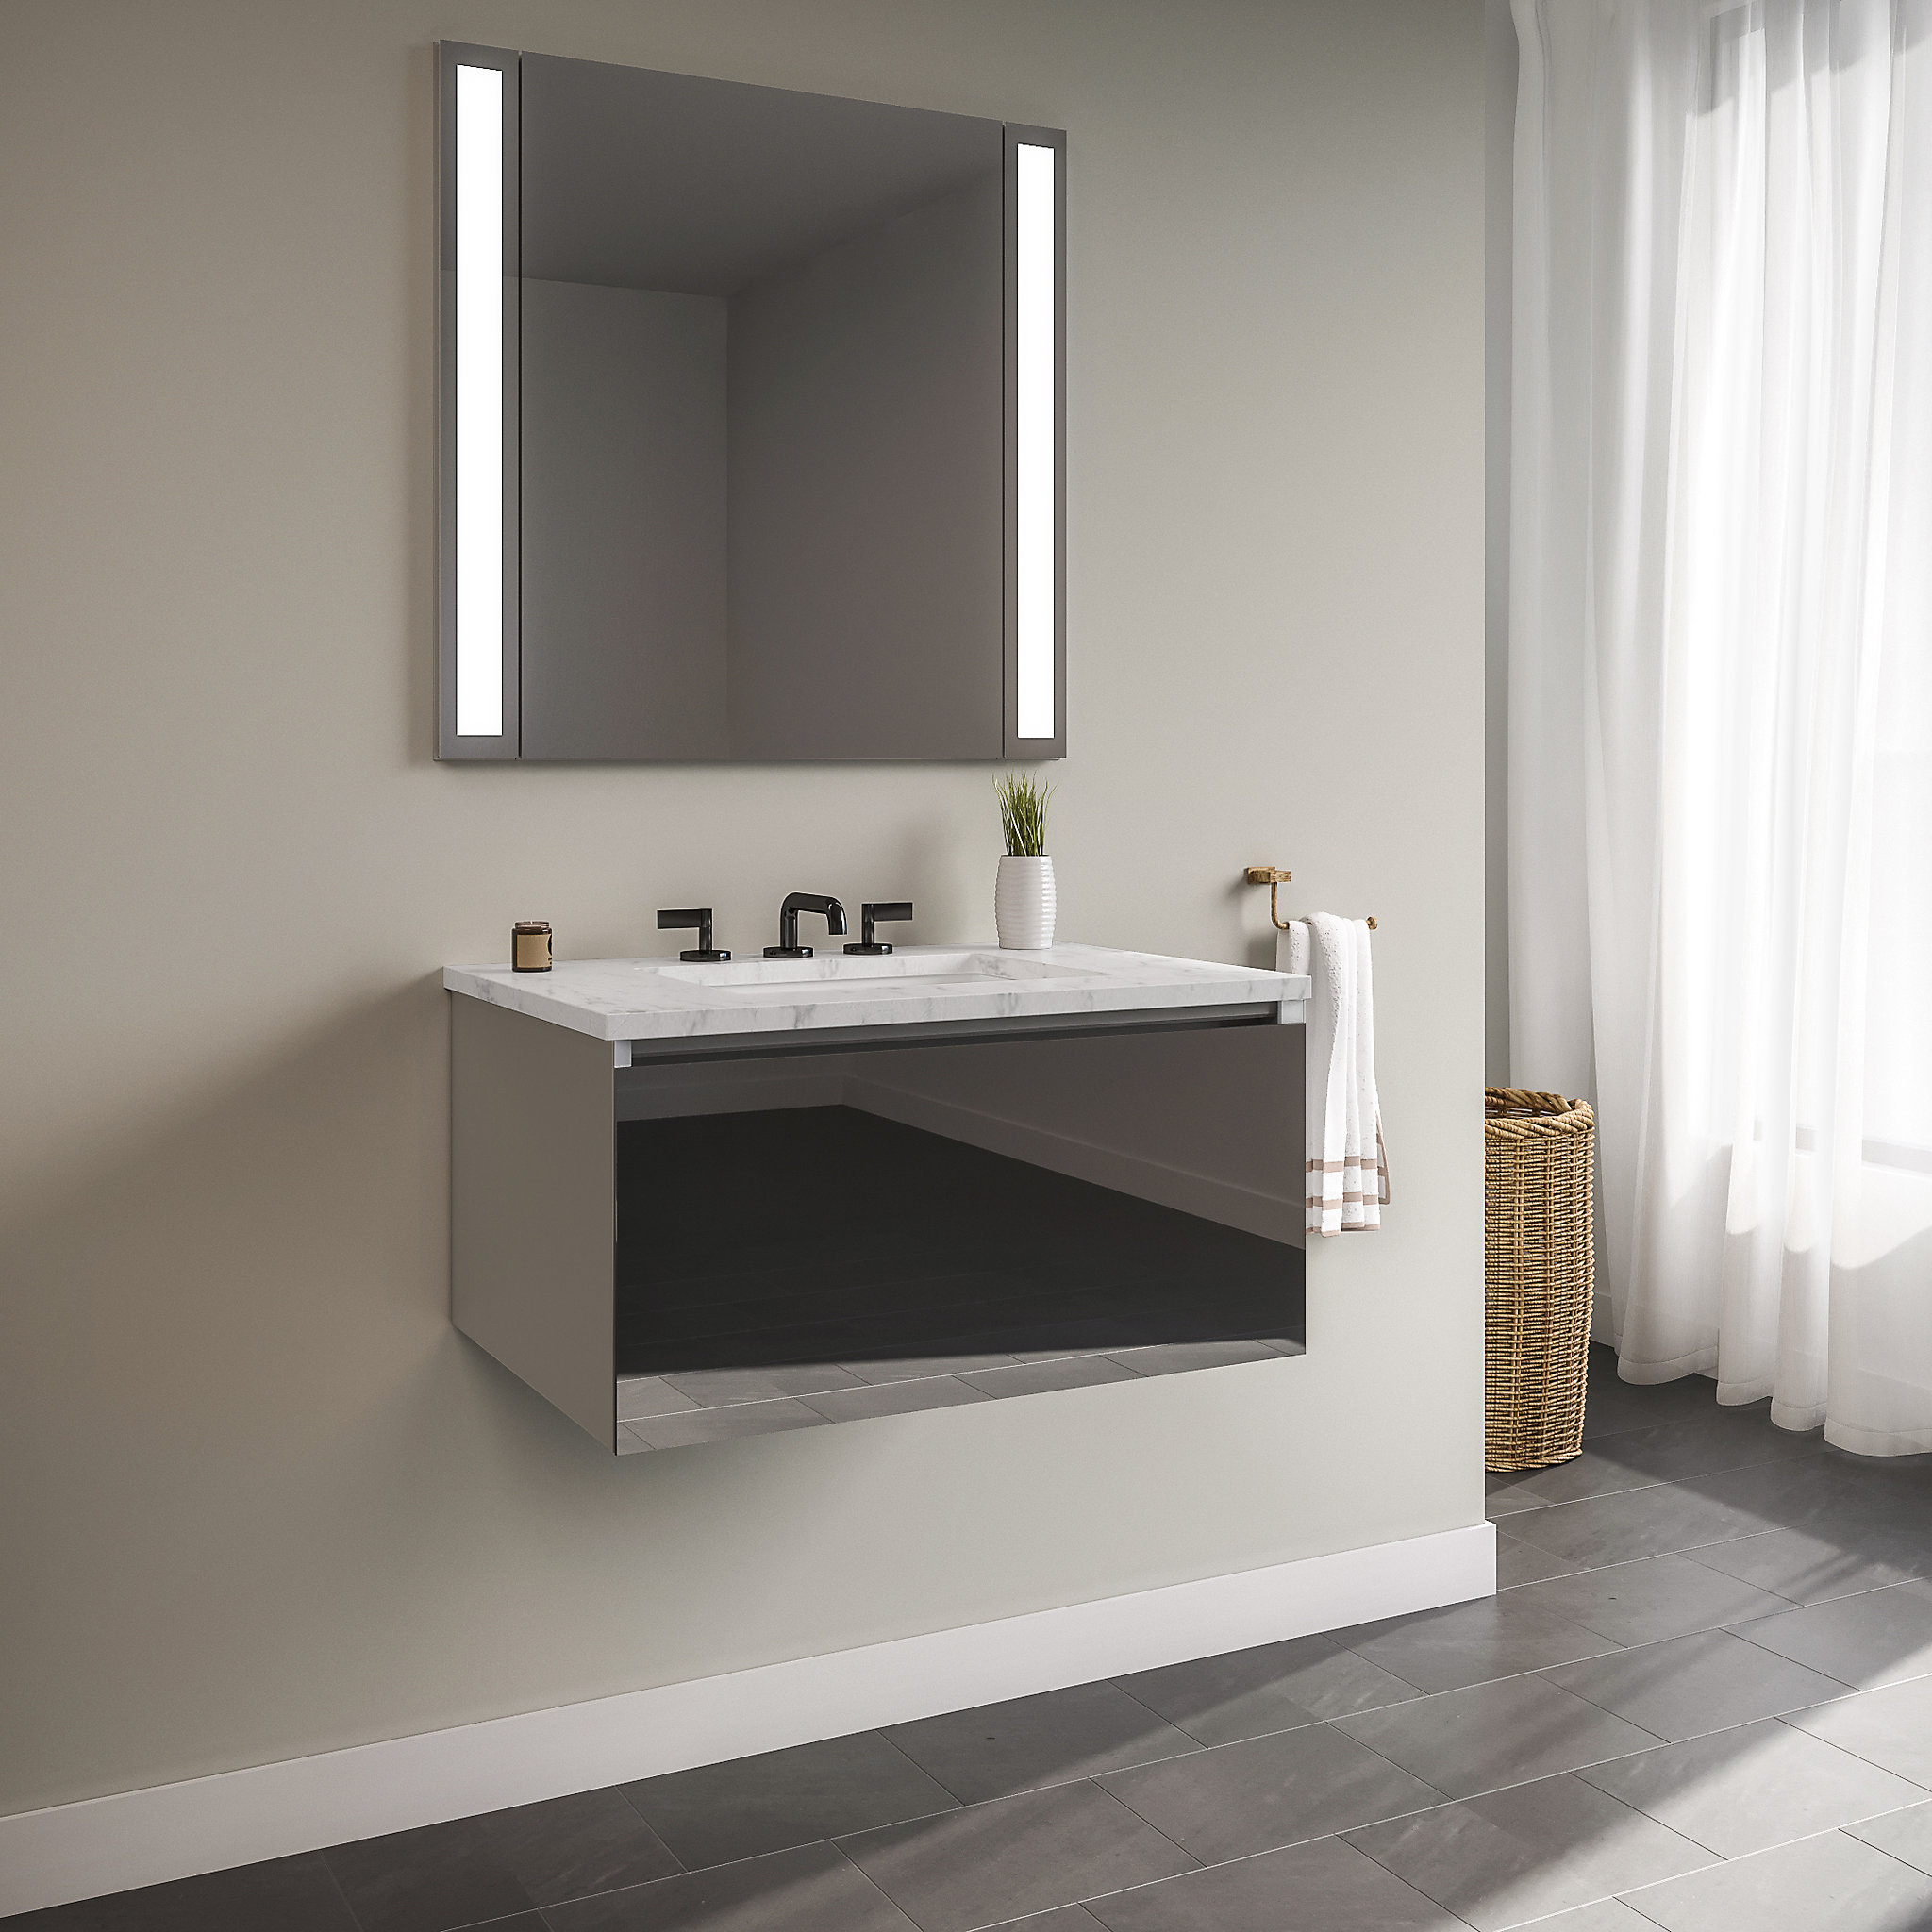 "Robern 36119400NB00001 Curated Cartesian Vanity, 36"" x 15"" x 21"", Single Drawer, Tinted Gray Mirror Glass, Plumbing Drawer, Engi"